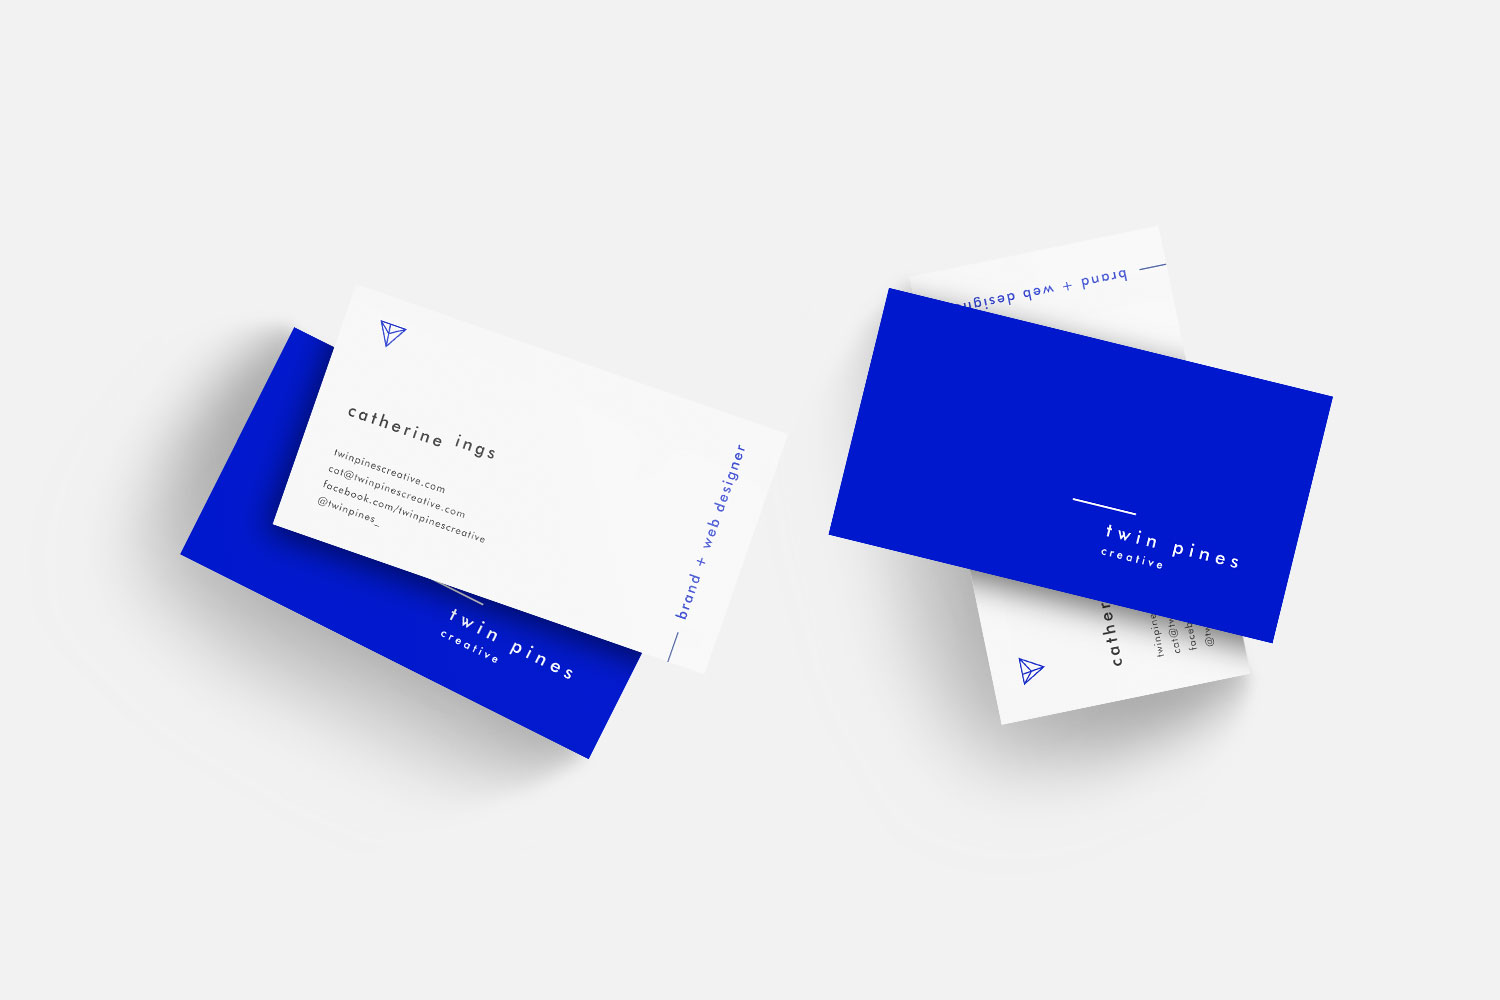 twinpines_7-businesscard.jpg